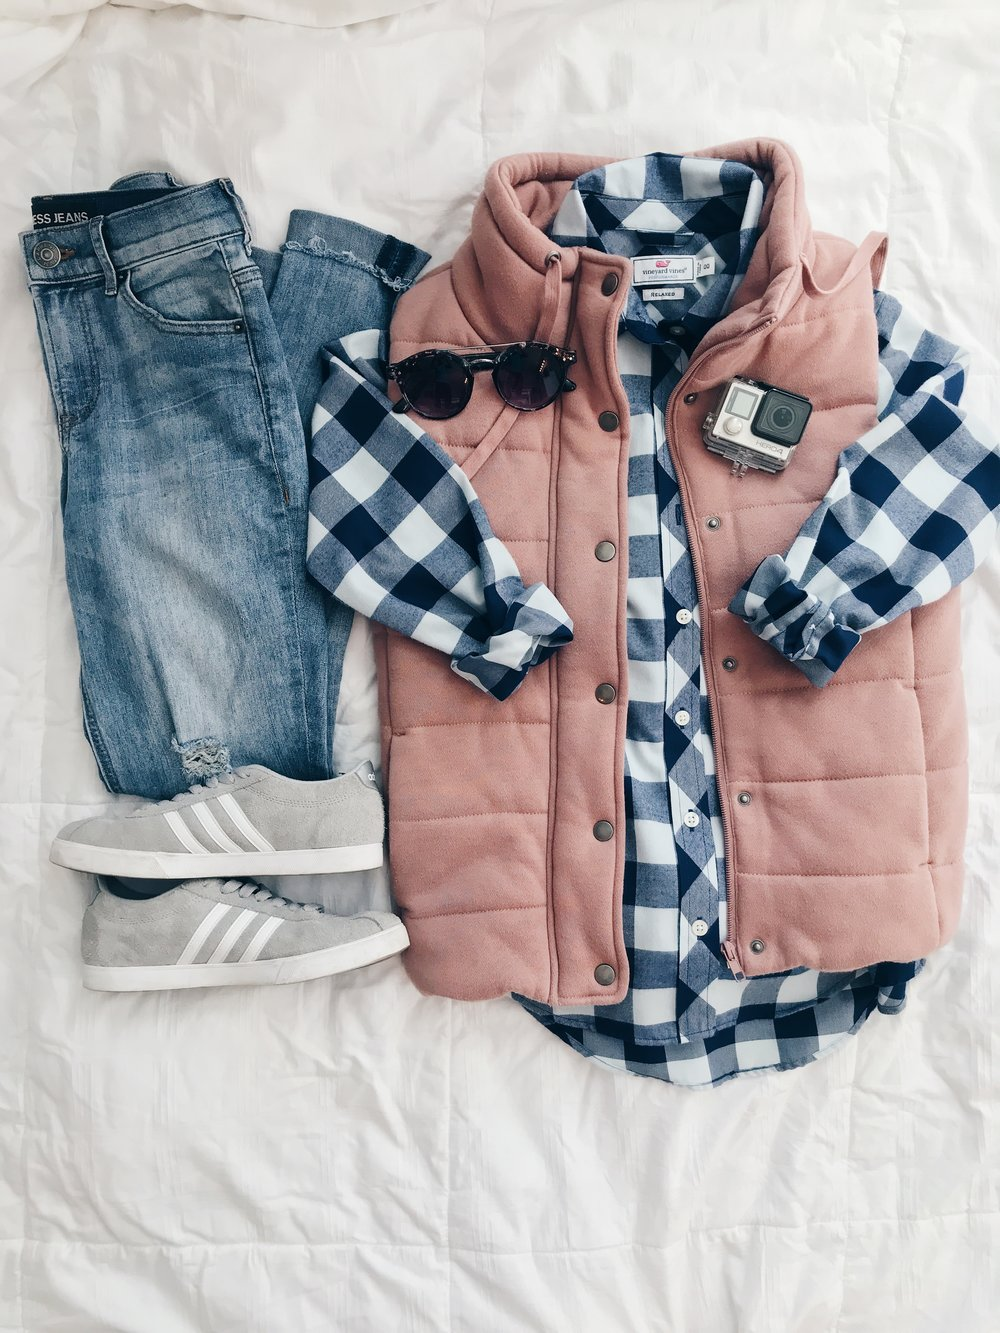 - Vest (Click here for black or here for wine, too) || Flannel (this one is from Vineyard Vines, but click here for one from Magnolia) || Jeans || Adidas Sneakers || Sunglasses*Use the code TRENDY10 for 10% off October 2 - October 9 at Magnolia Boutique.